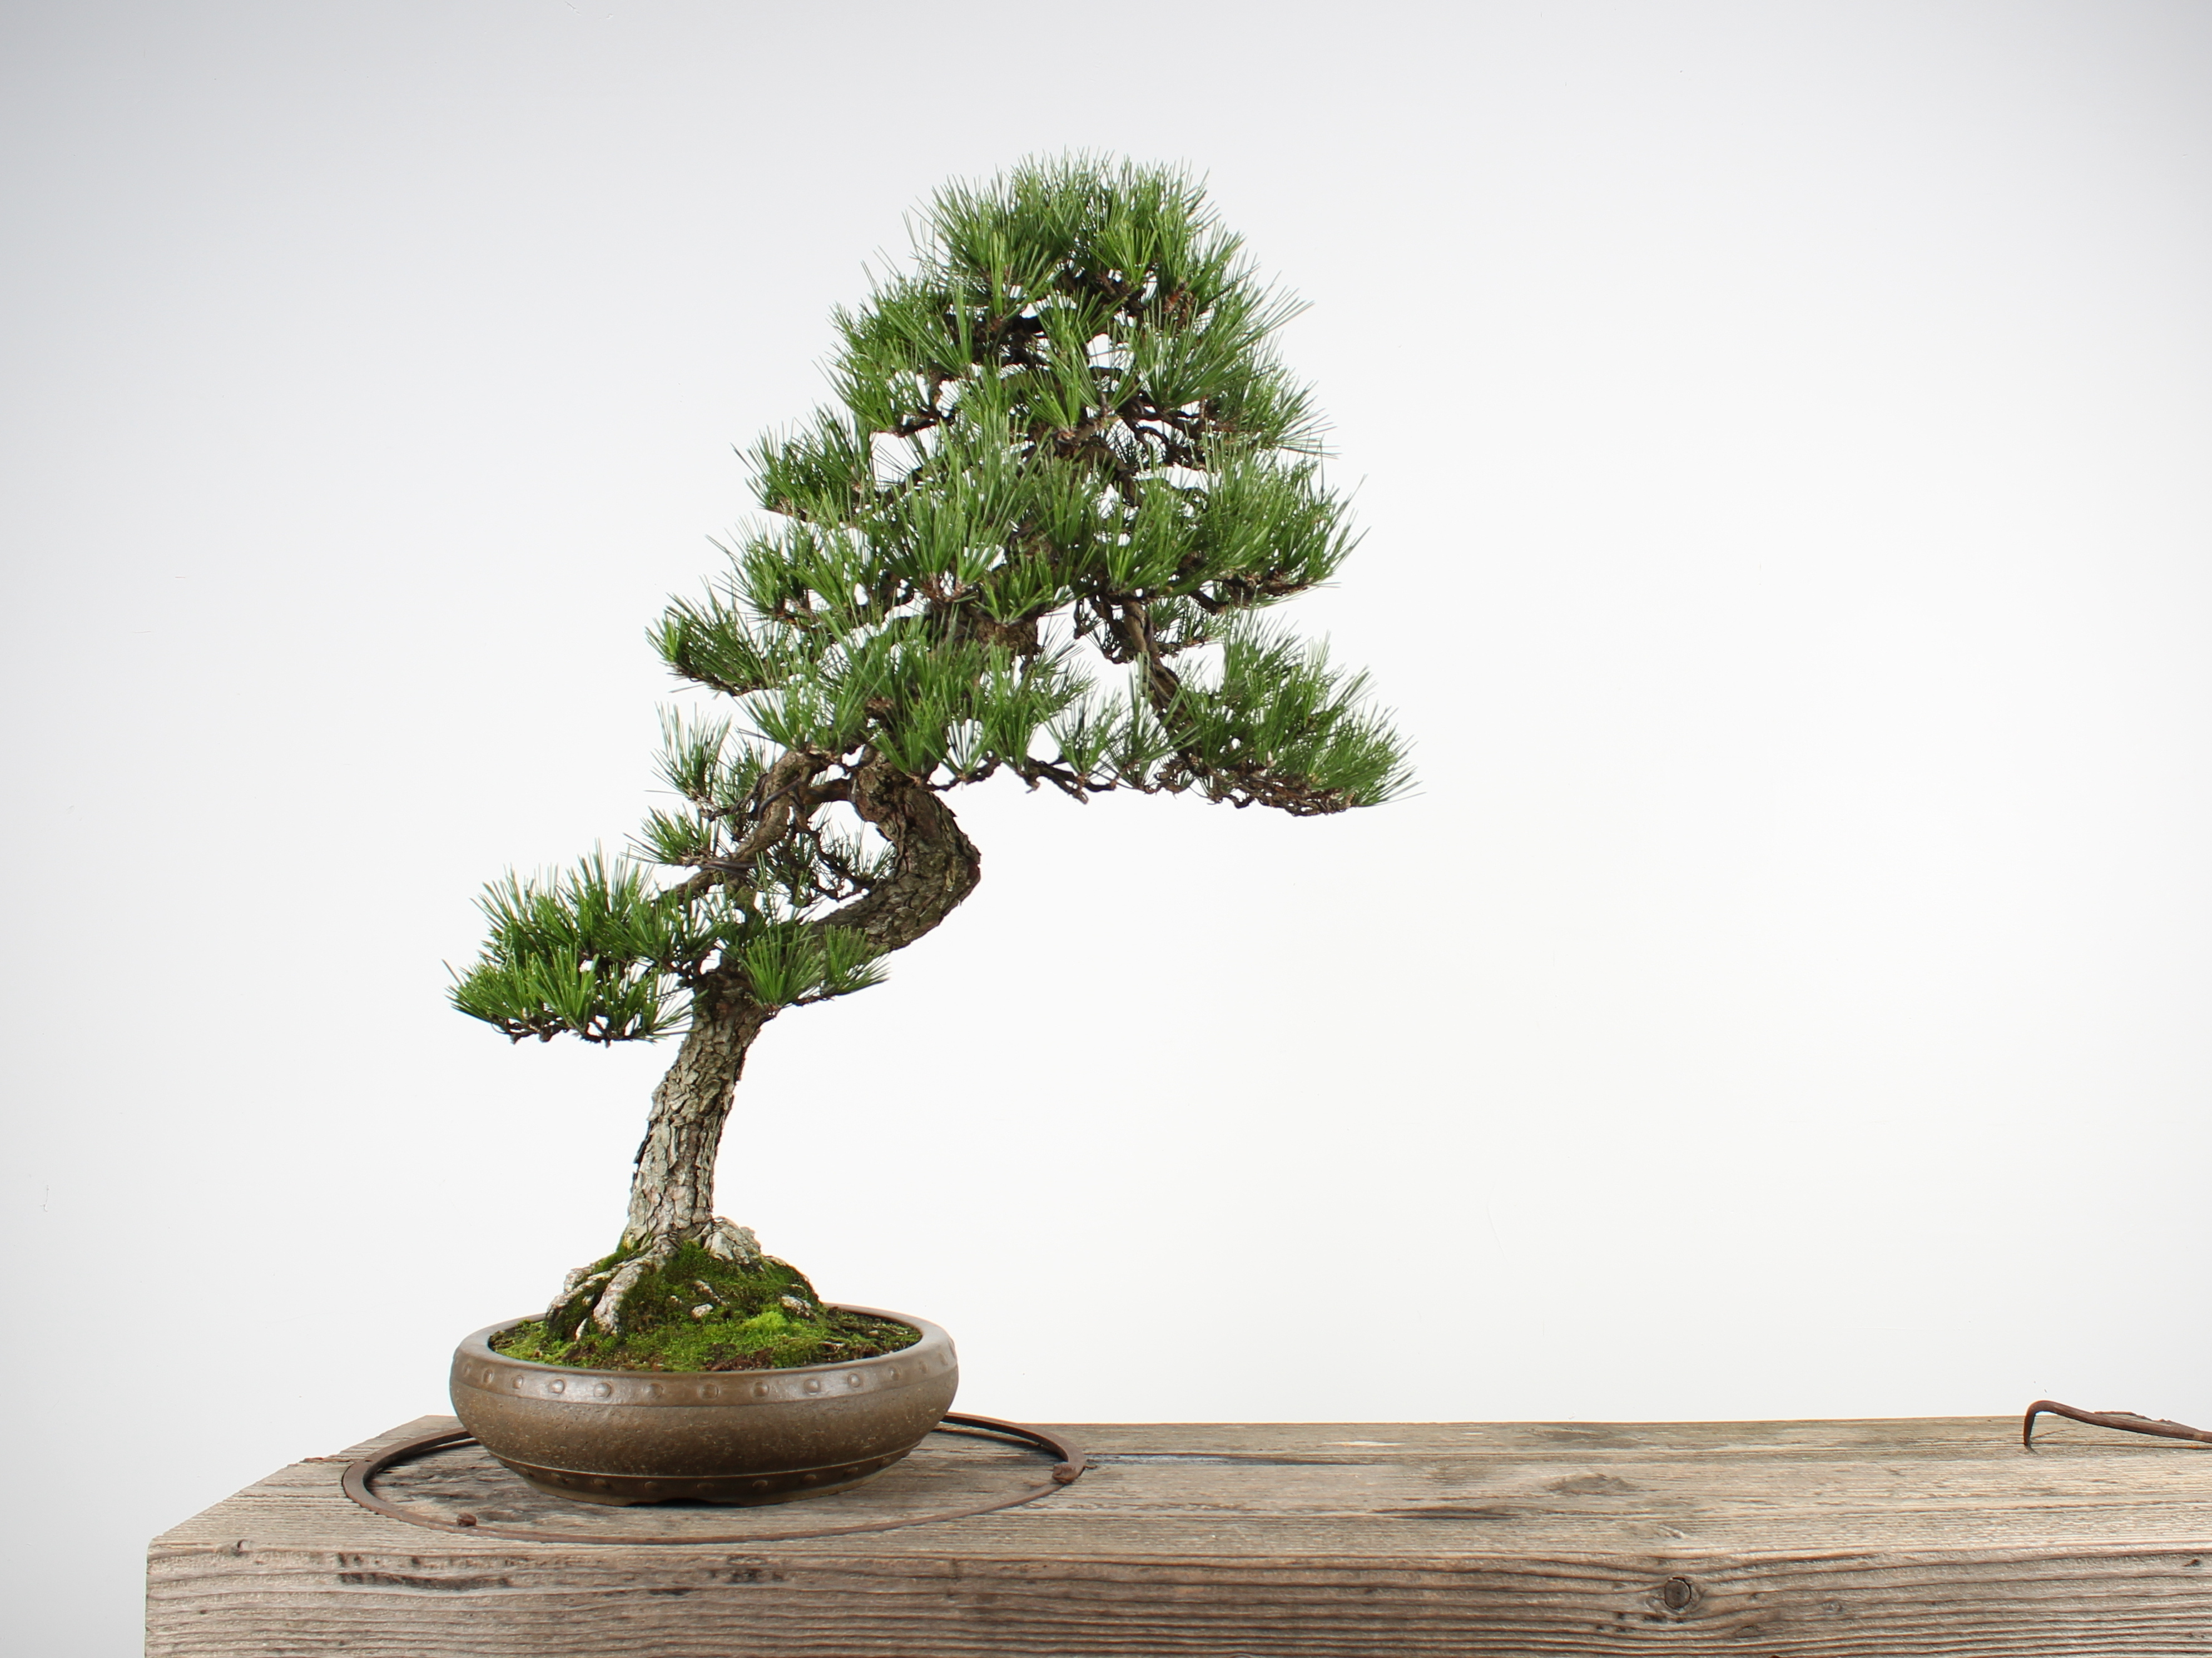 Priceless Bonsai Trees Stolen From Museum In Washington State Npr Houston Public Media